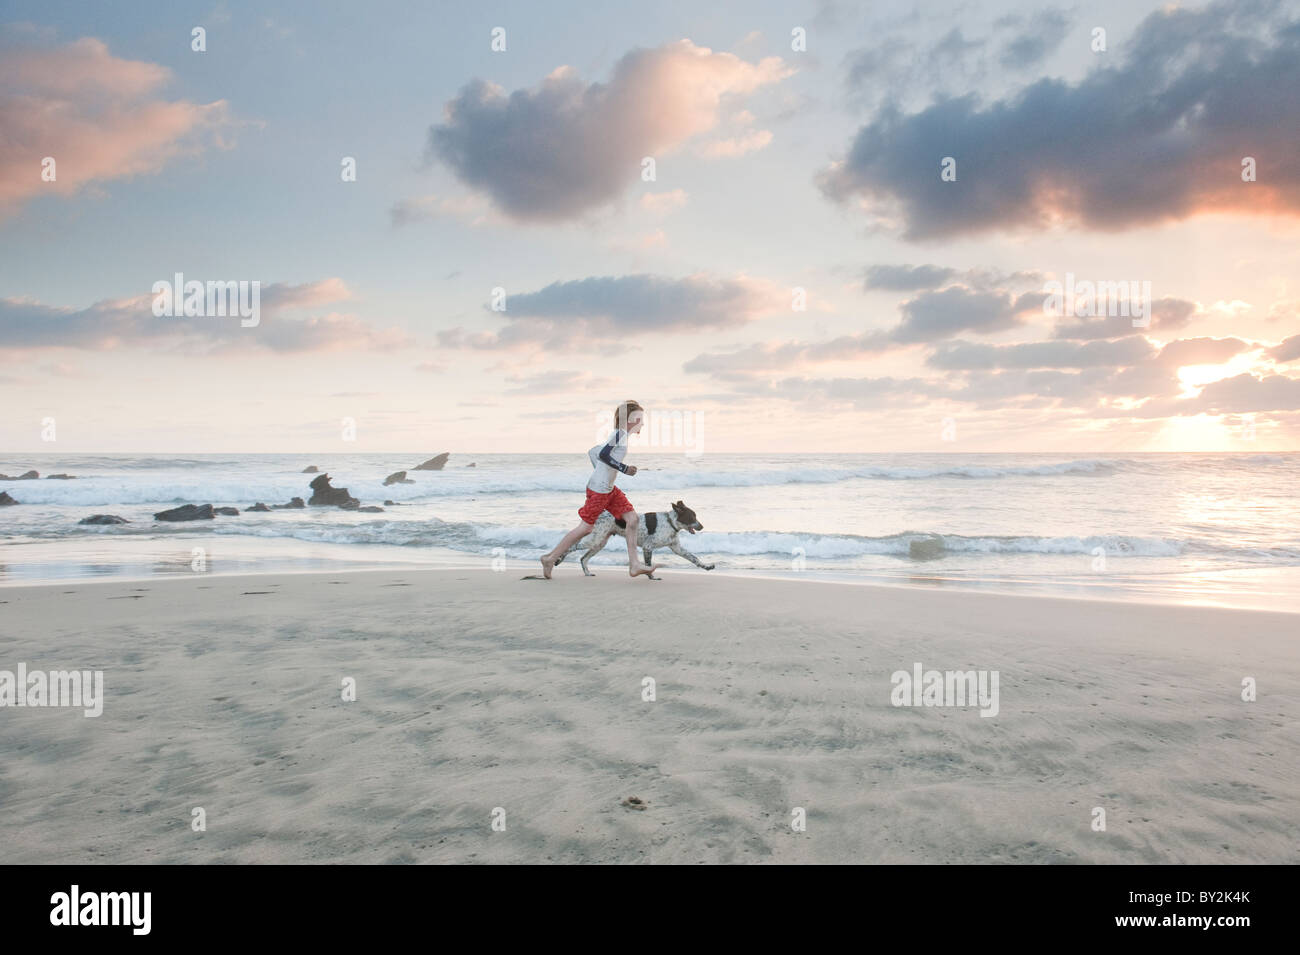 A young boy and dog run along a quiet beach in Mexico at sunset. - Stock Image